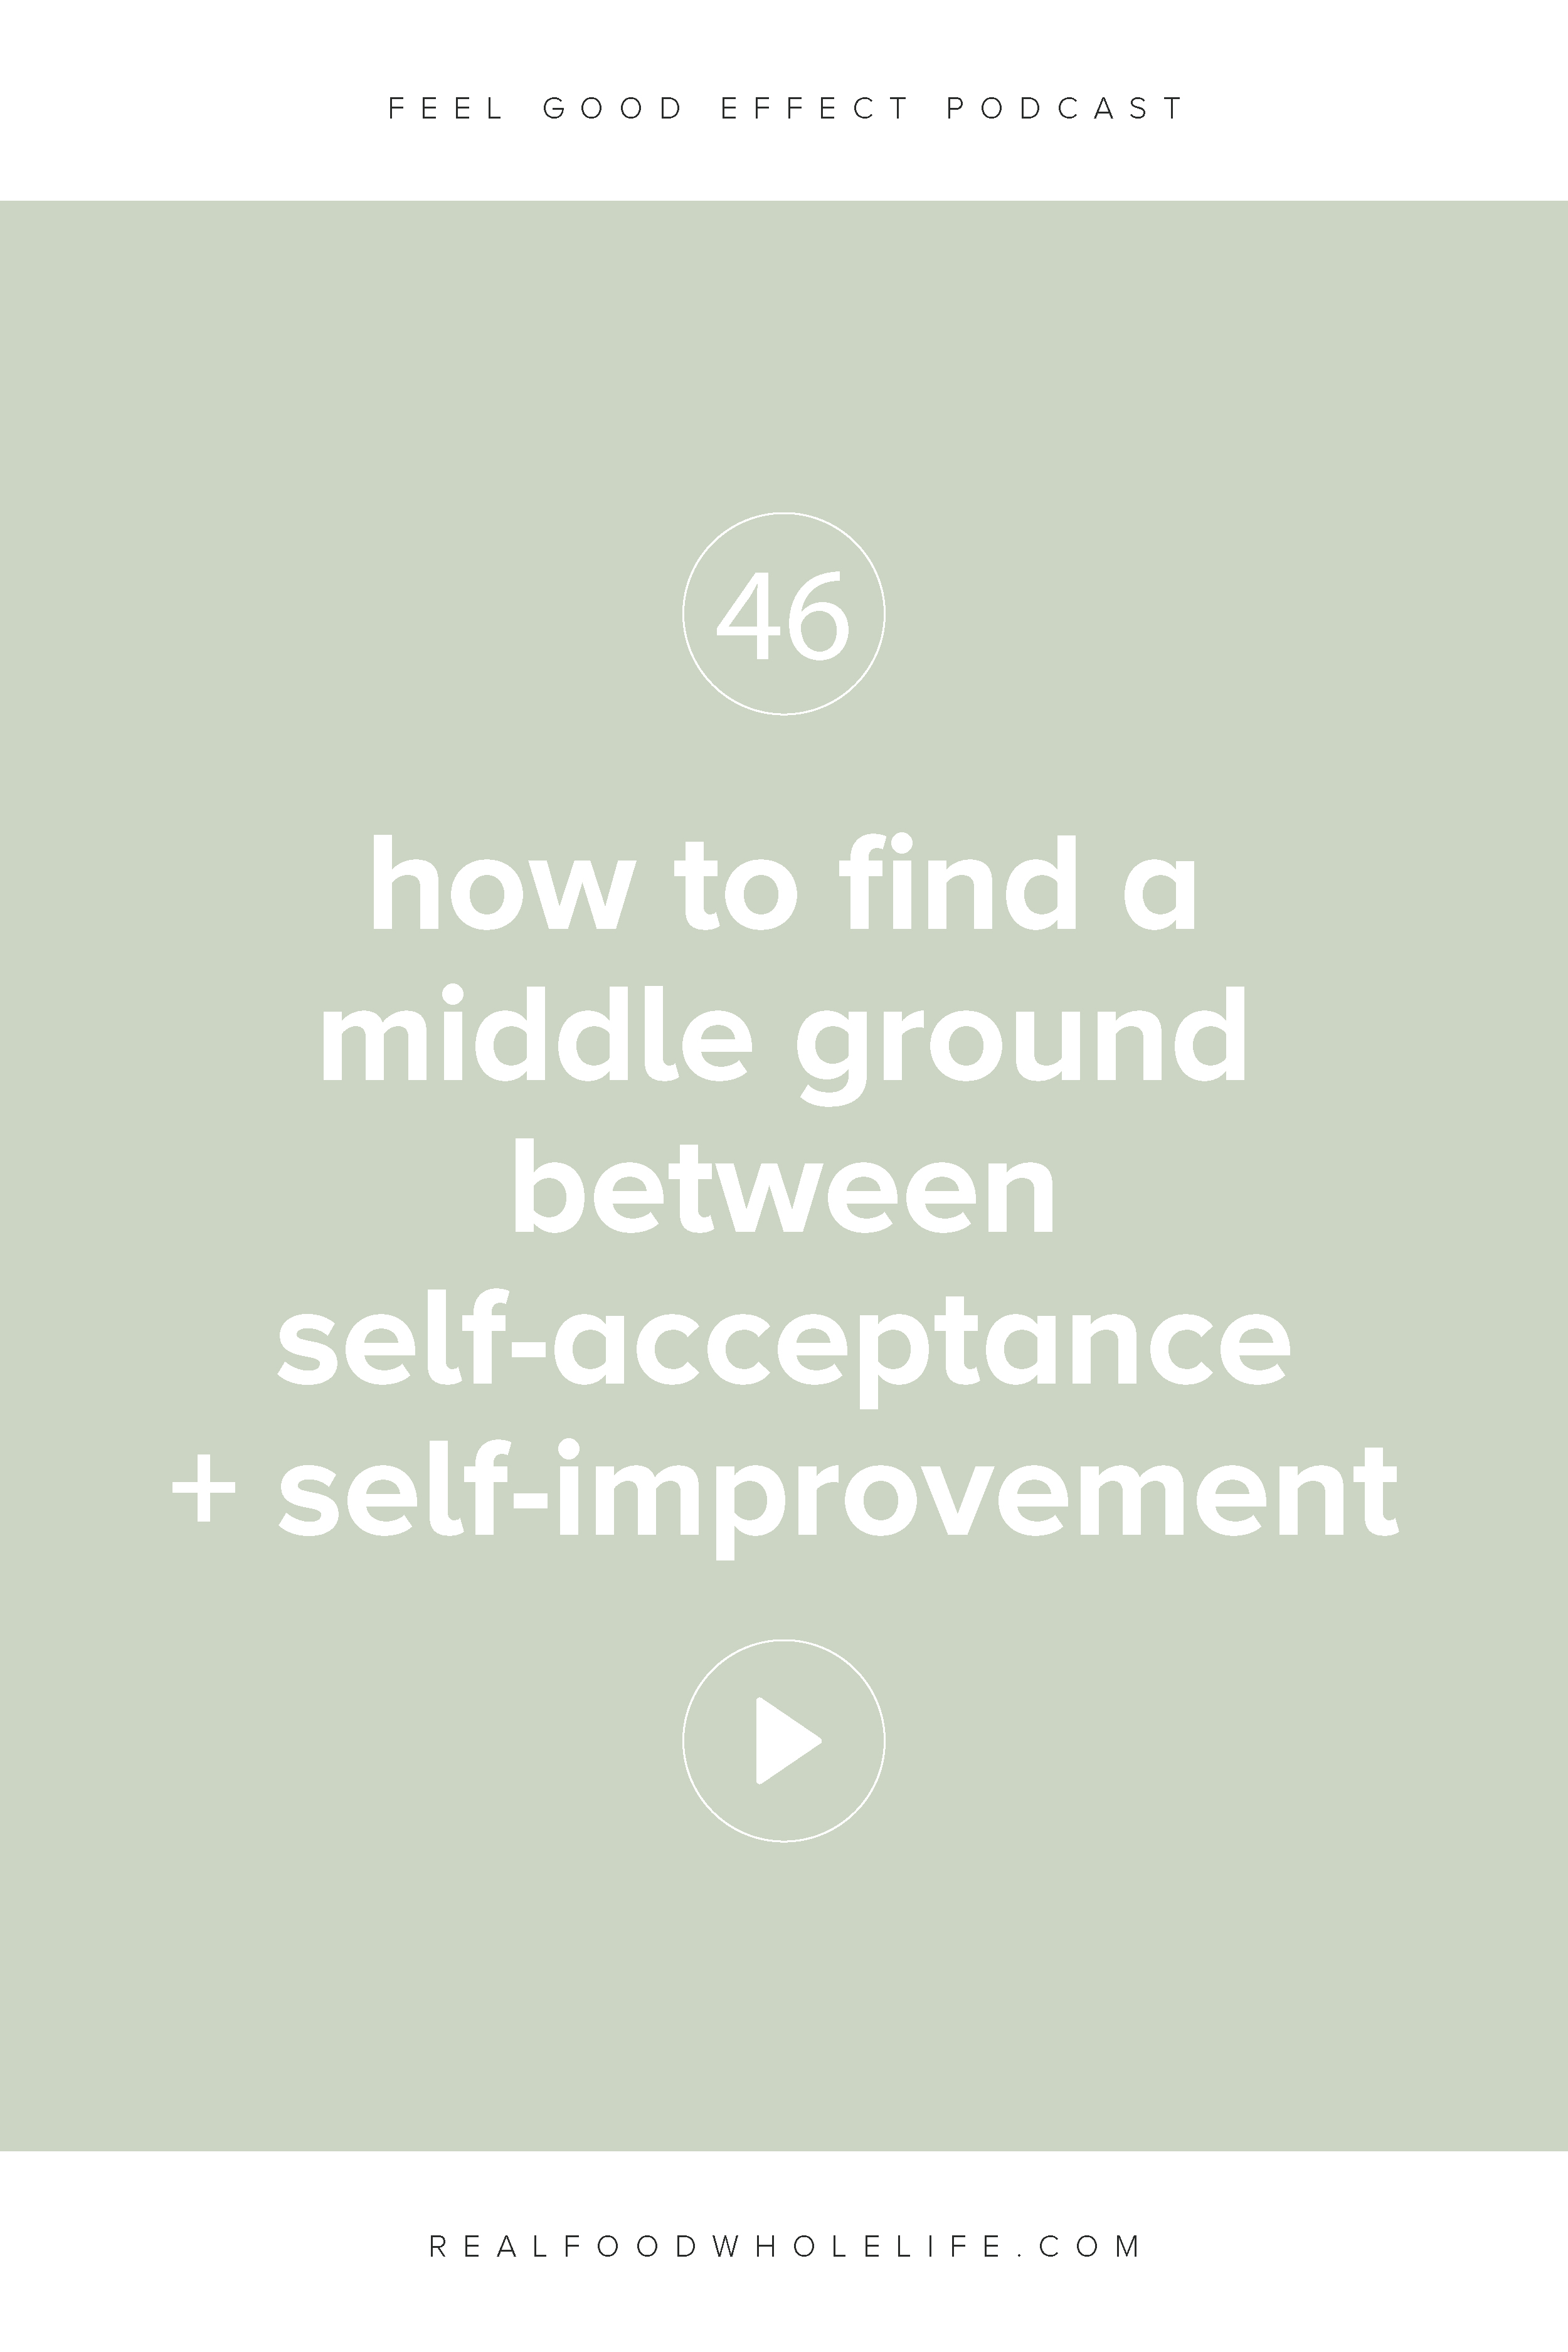 How to Find Middle Ground Between Self-Acceptance and Self-Improvement